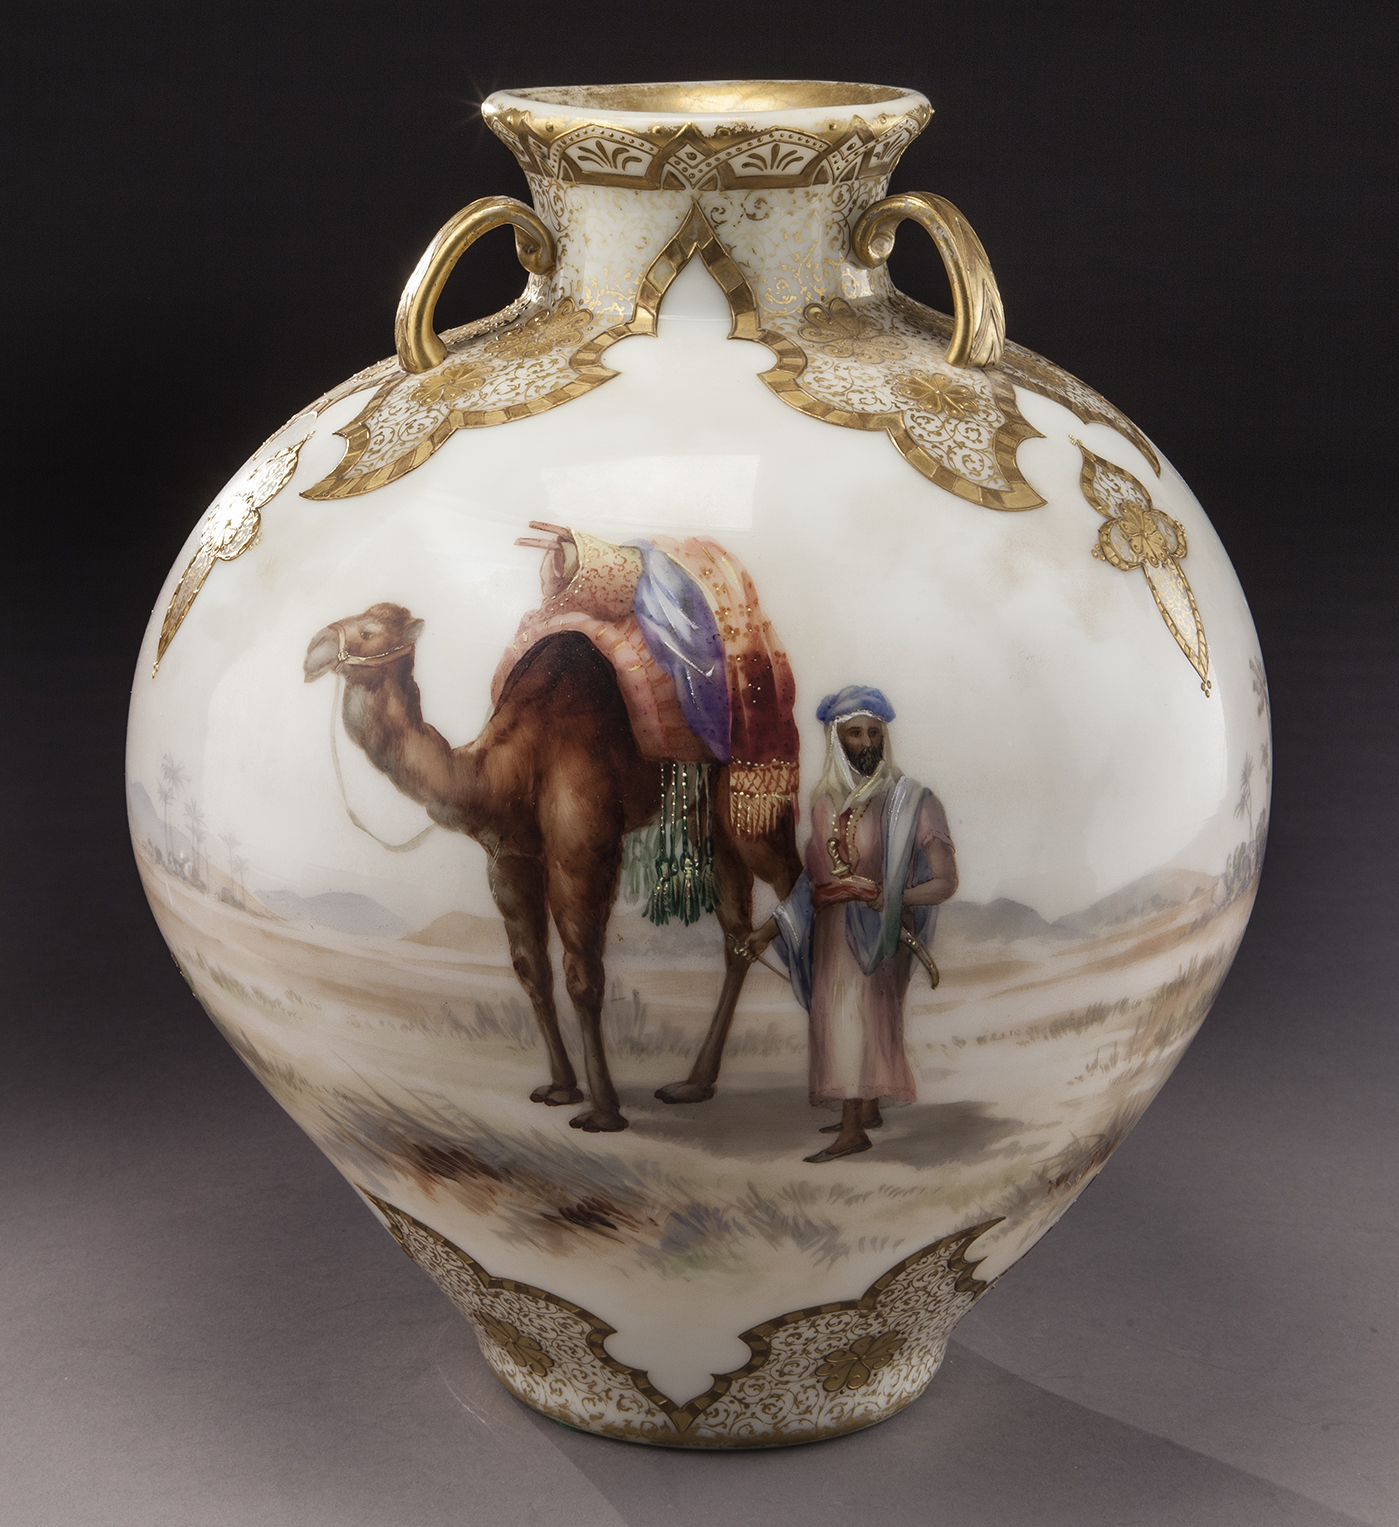 """Mt. Washington Colonial ware Garden of Allah glass vase, large ovoid form decorated with Egyptian scene of camels Bedouin. NOTE: Mt. Washington & Pairpoint Glass by Wilson, page 95. 12.5""""H, Circa - 1890."""